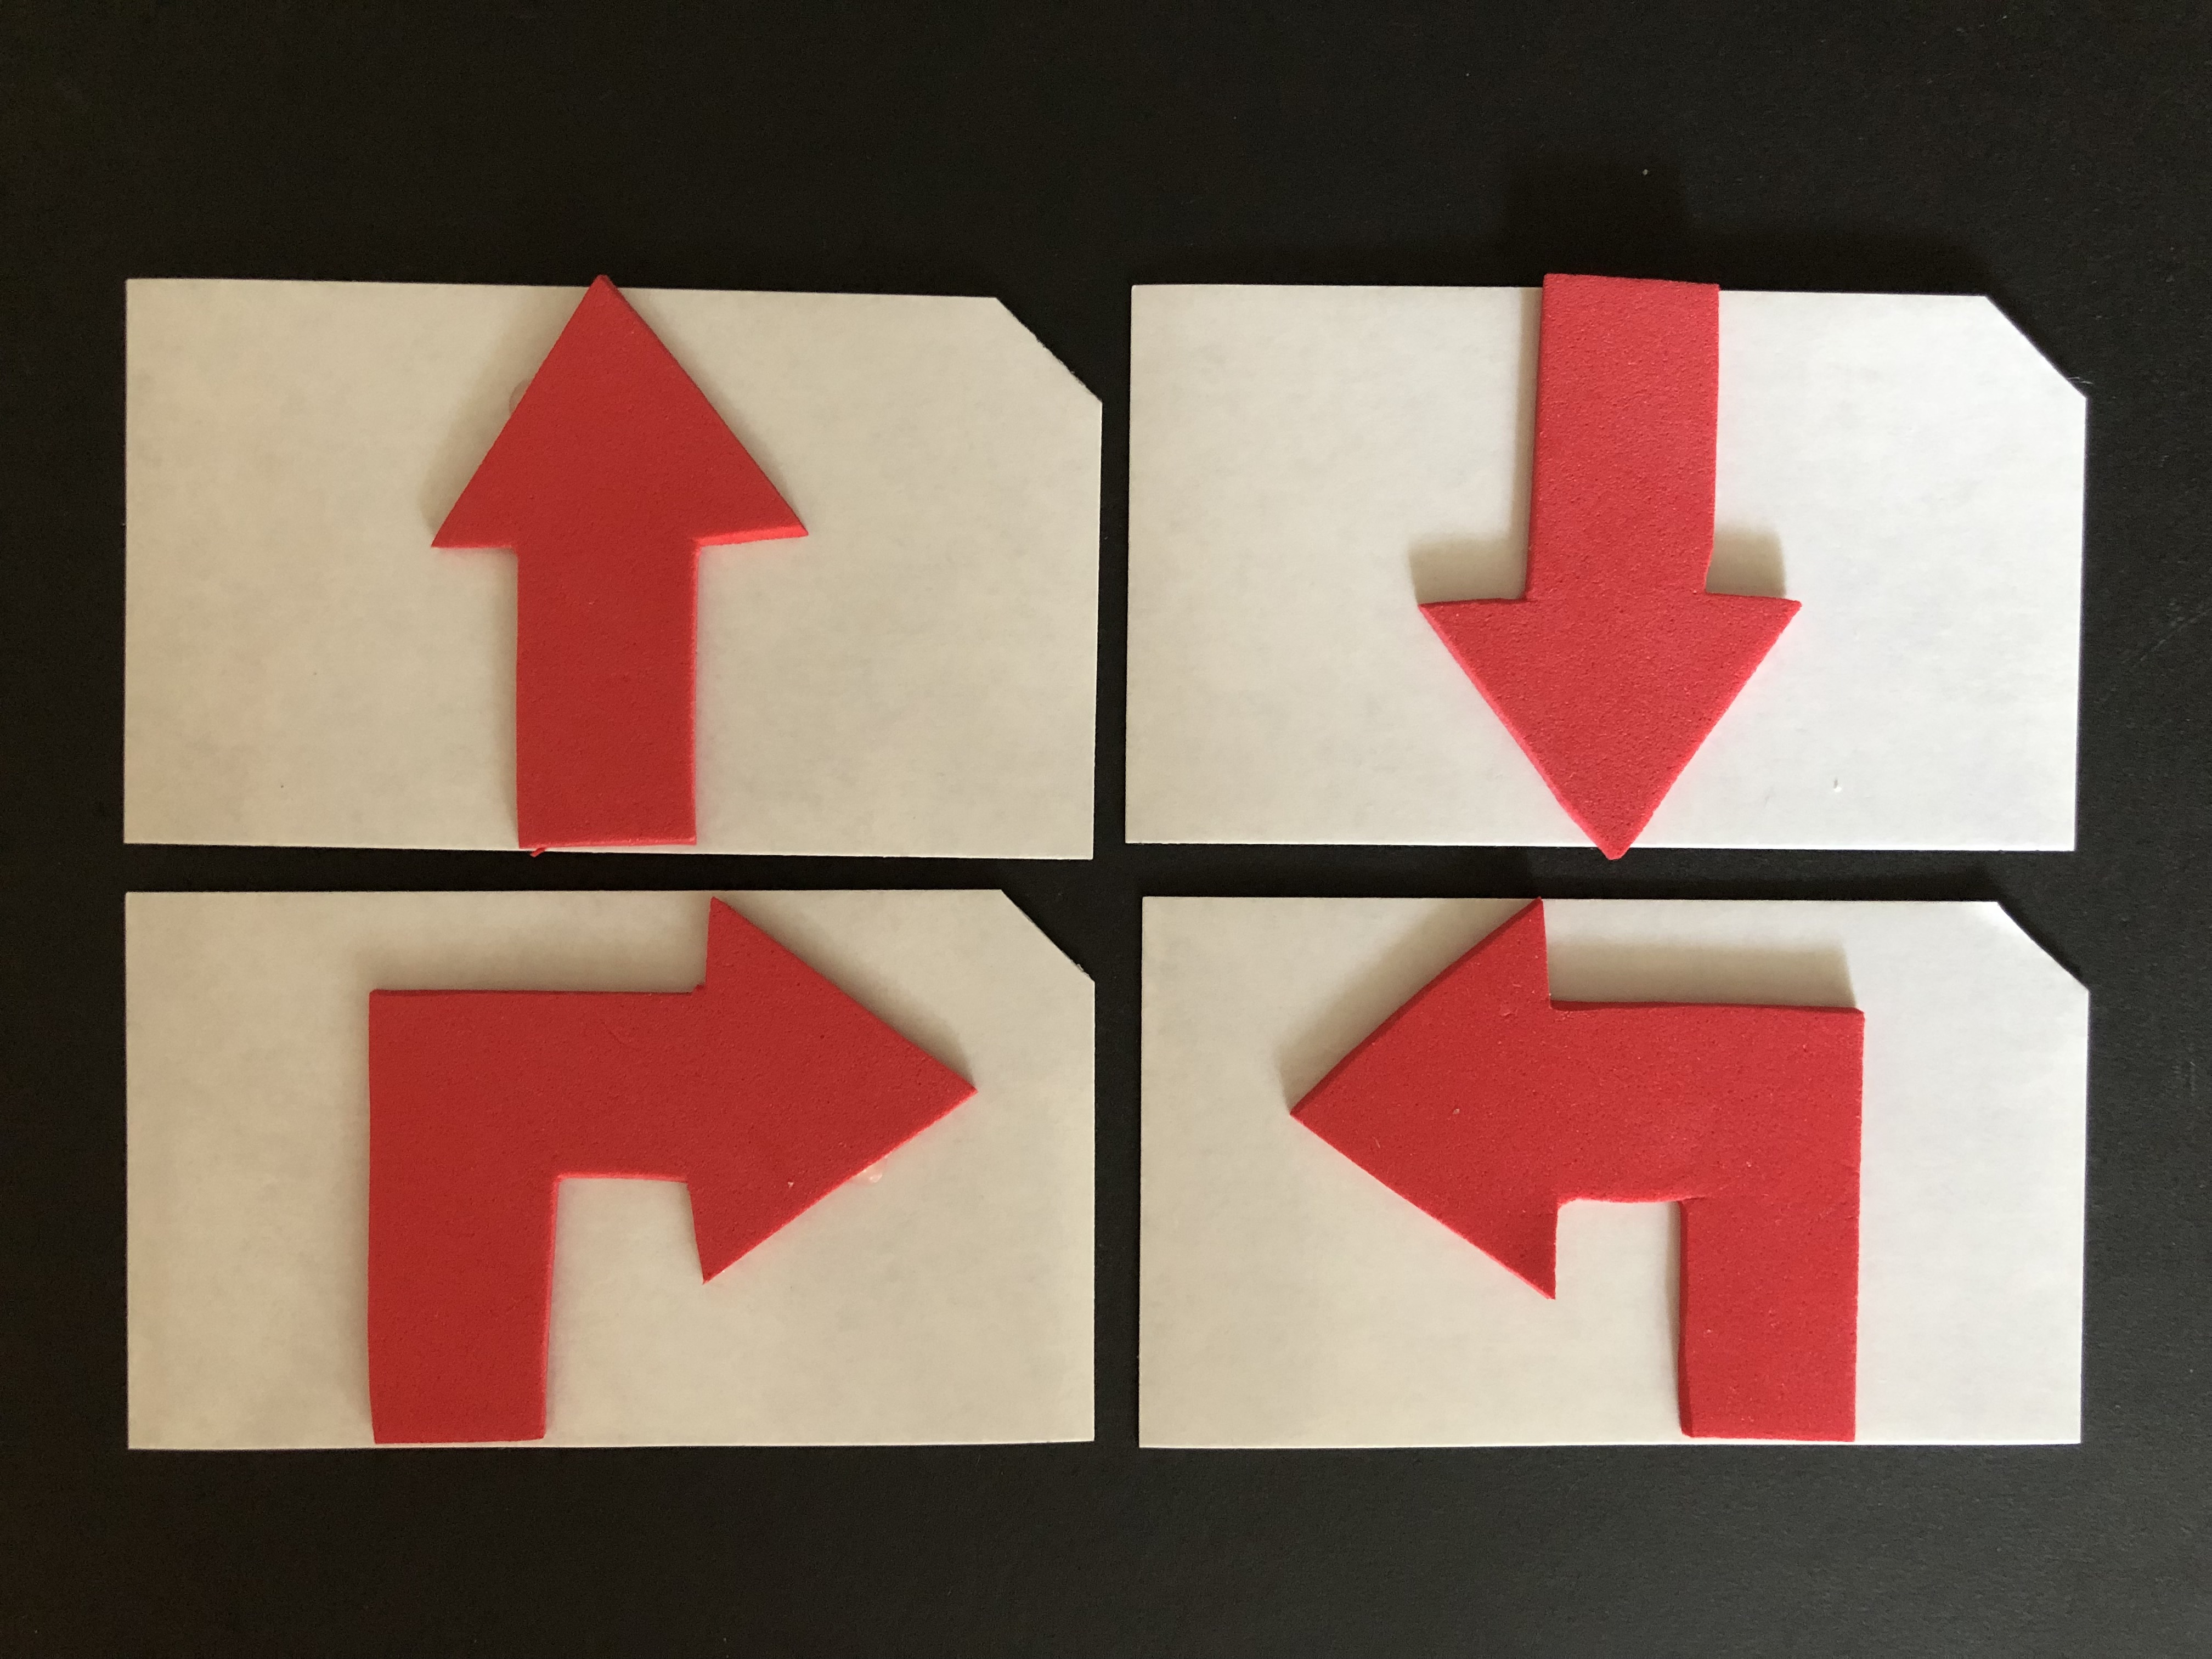 Photo of red foam arrows attached to magnetic business cards; right, left, up and down arrows.